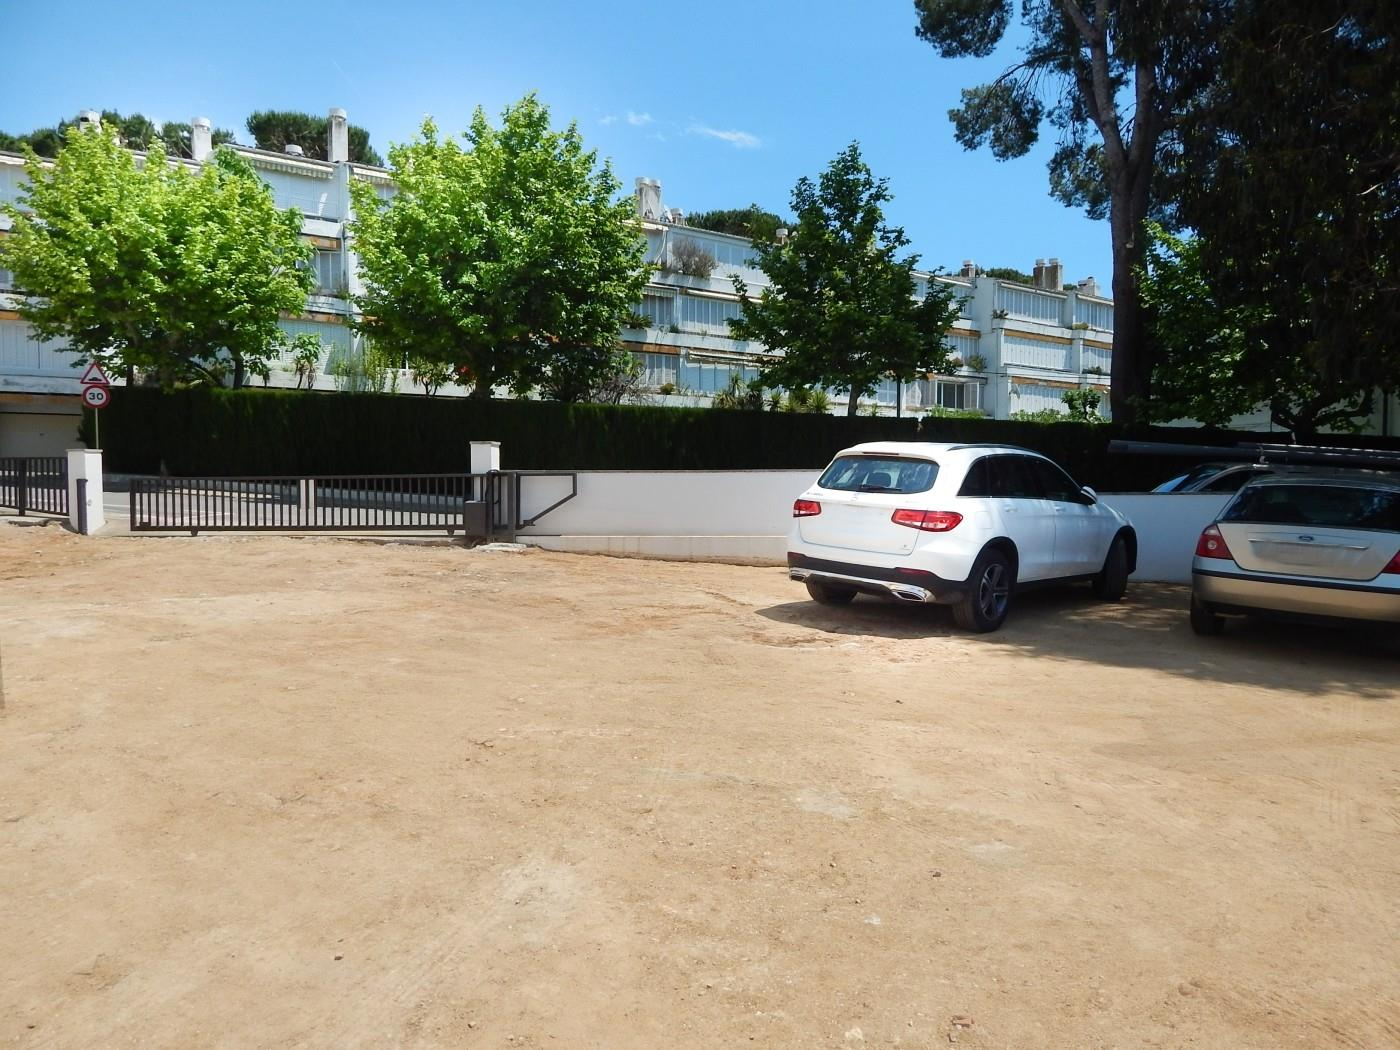 Rent Apartment with Swimming pool in Platja d'Aro - Gardenies Planta Baixa Piscina i Wifi - 35